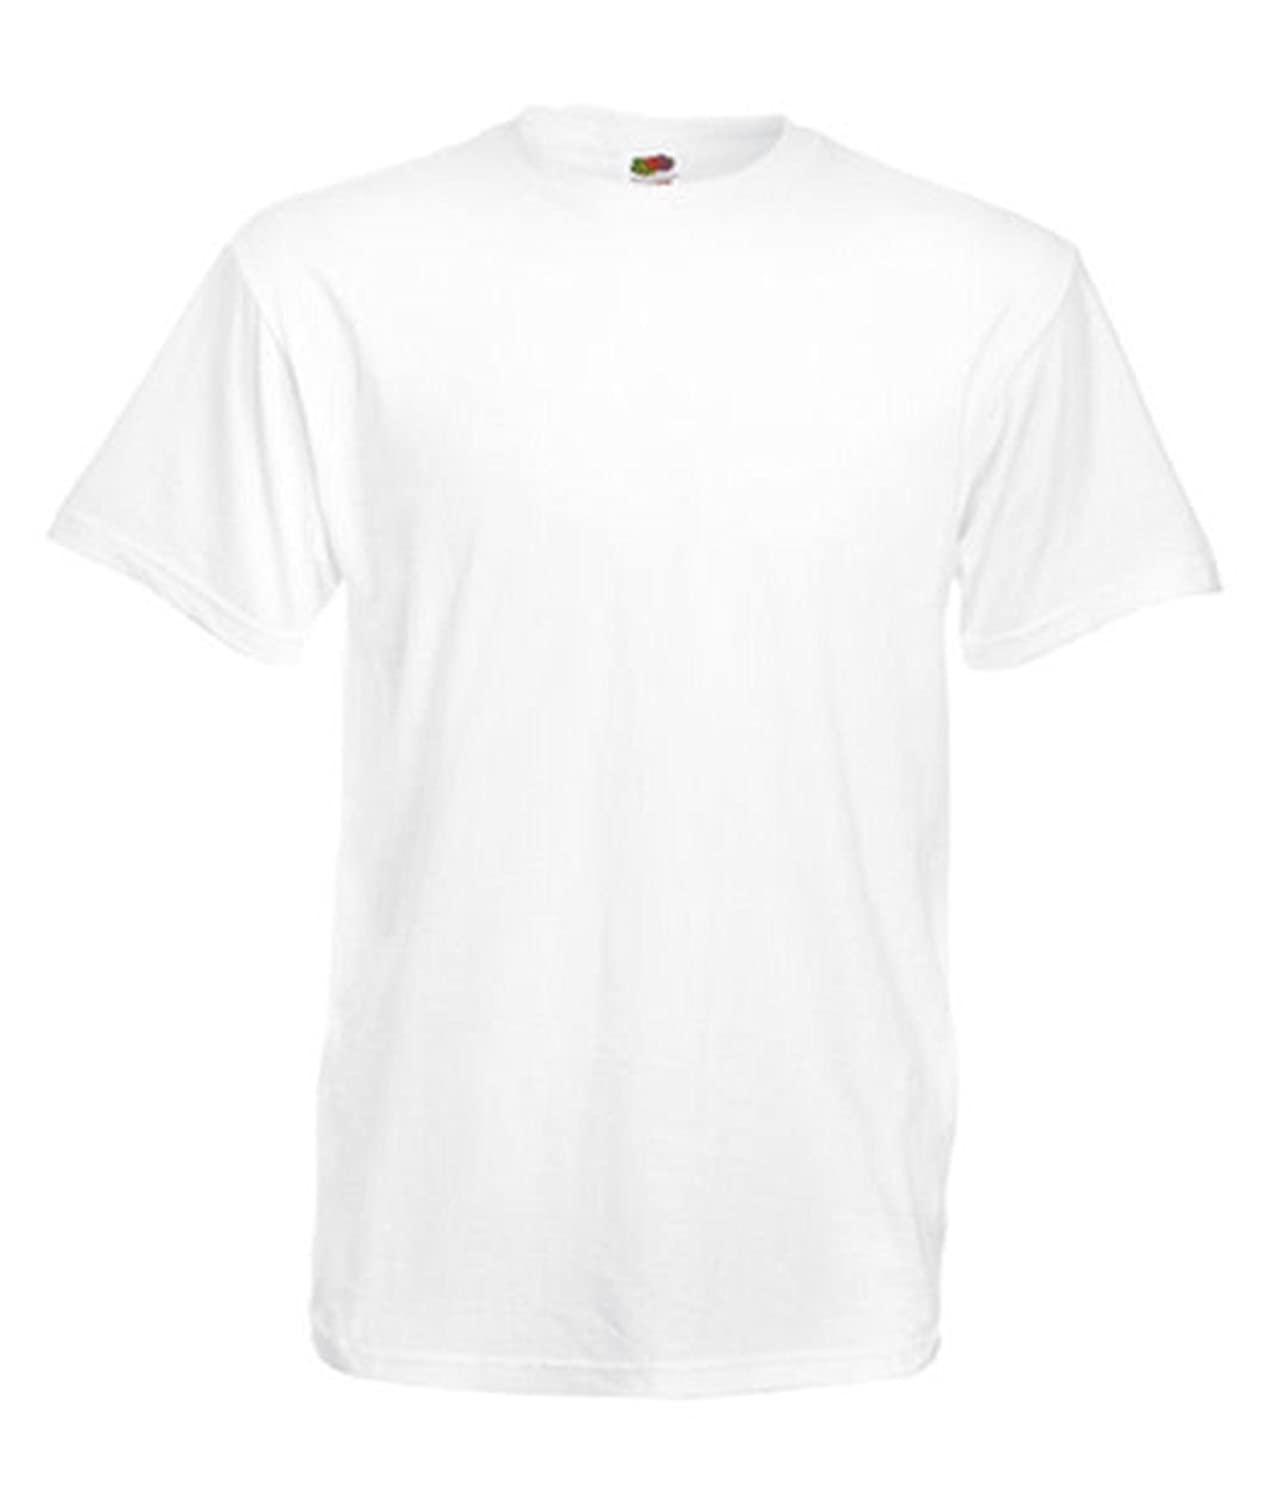 Blank T-Shirts: Many Styles and Colors Available Supplying our customers with blank t-shirts is what we do best. Whether you need one tee for yourself or a large quantity for .